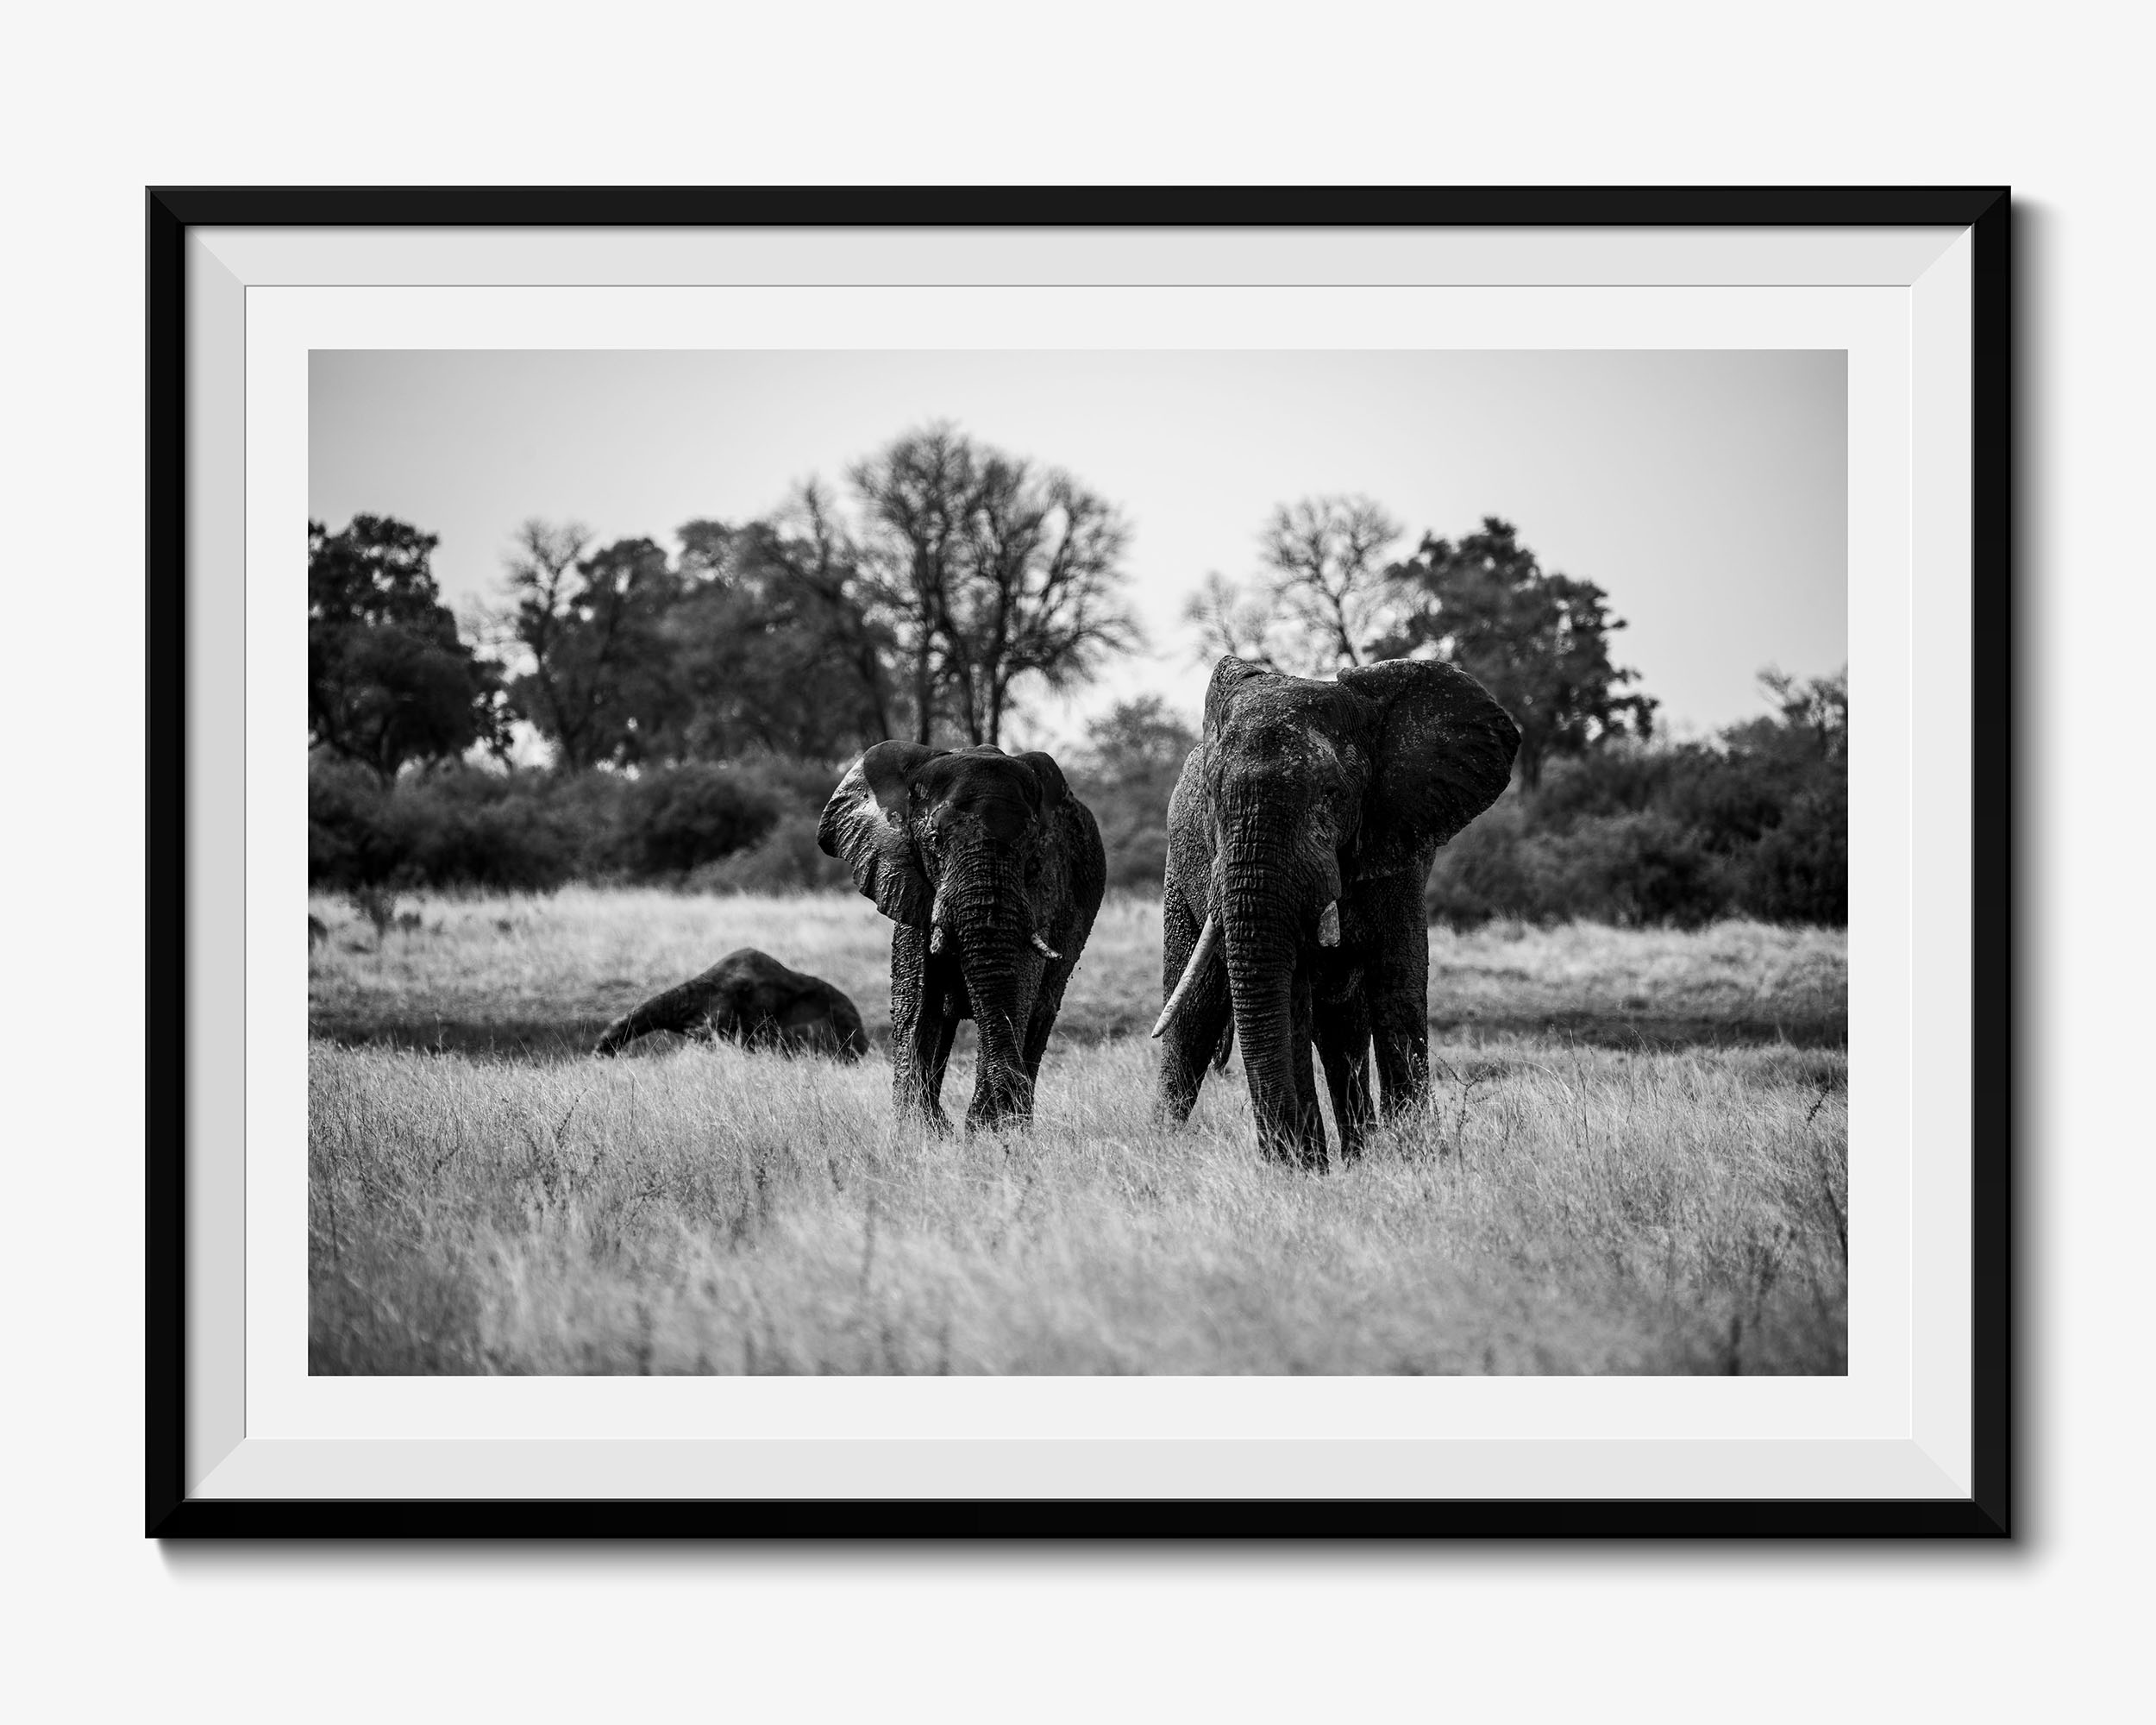 Venerable - Fine Art Photography Print